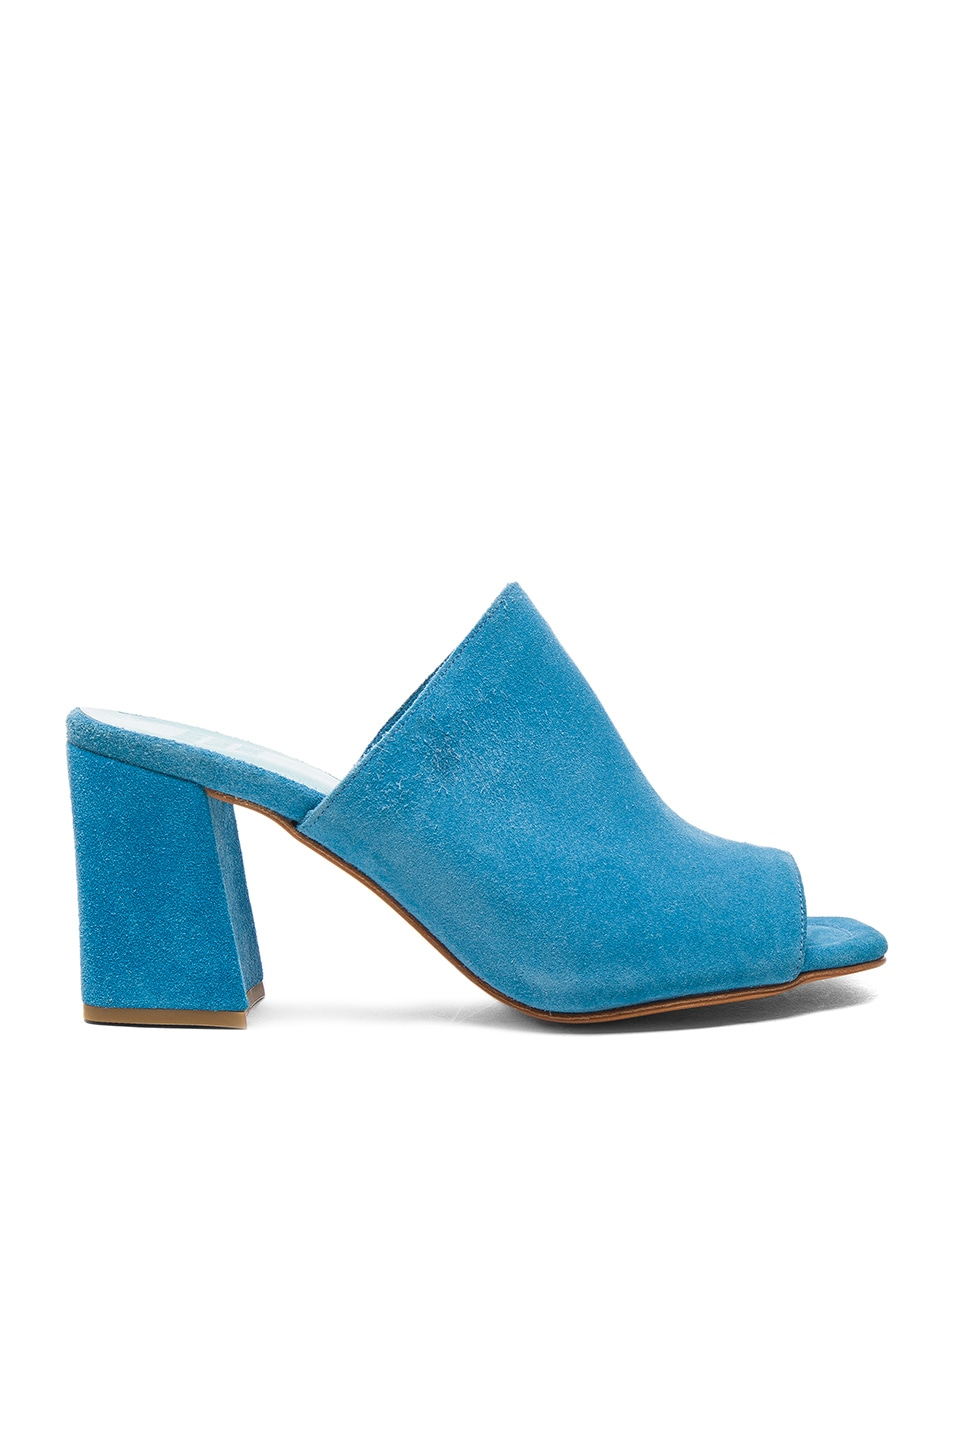 Image 1 of Maryam Nassir Zadeh Suede Penelope Mules in Turquoise Suede